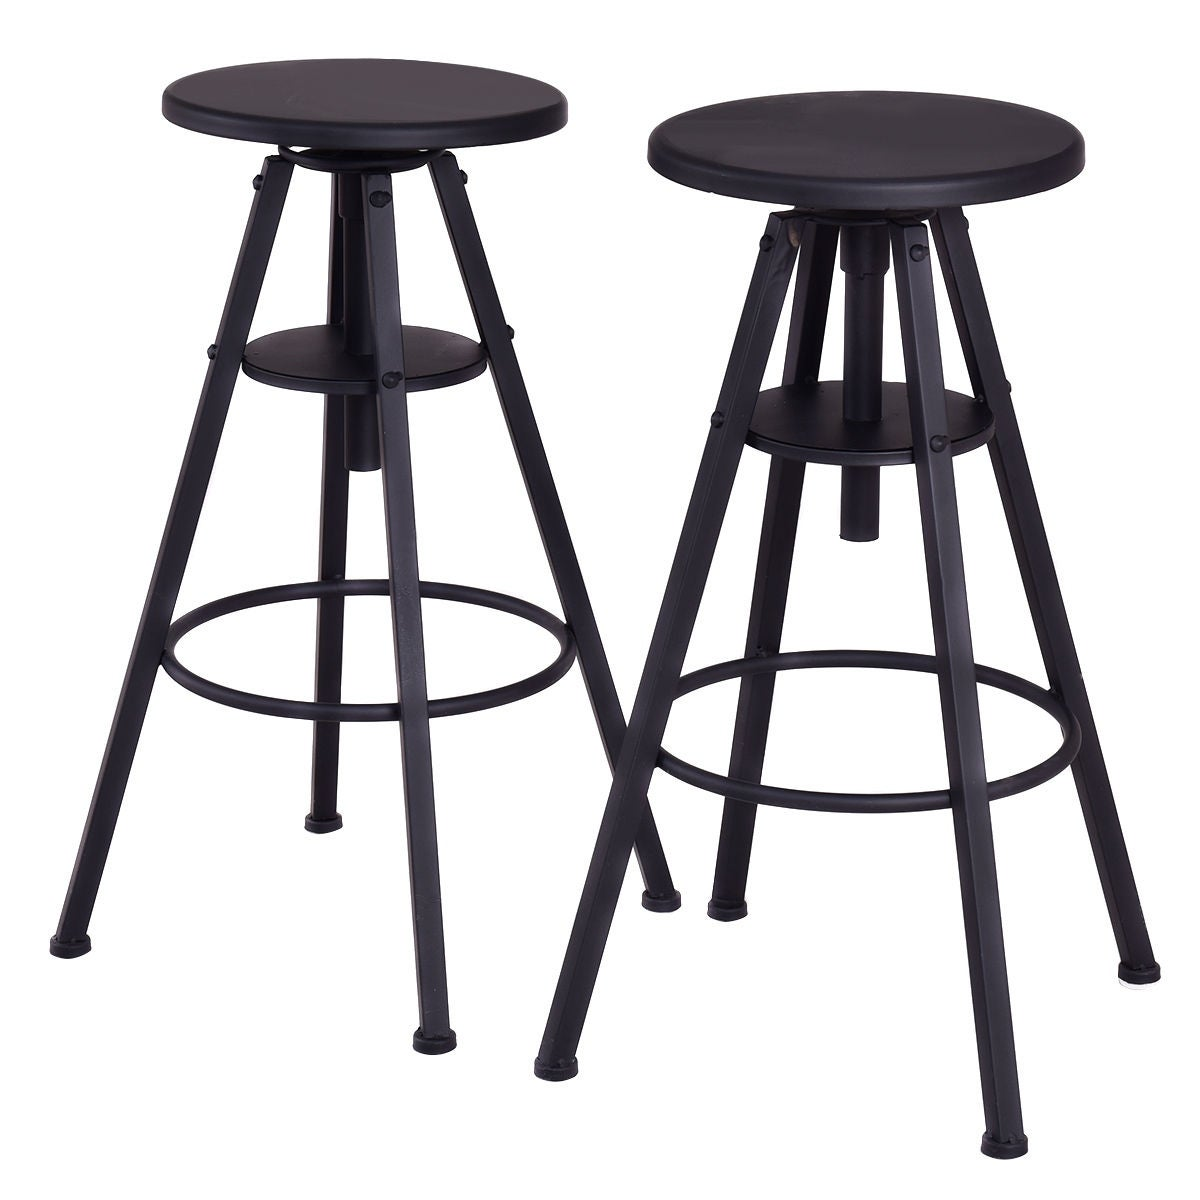 Ordinaire Costway Set Of 2 Vintage Bar Stools Height Adjustable Metal Pub Chairs  Black   Free Shipping Today   Overstock.com   23964151